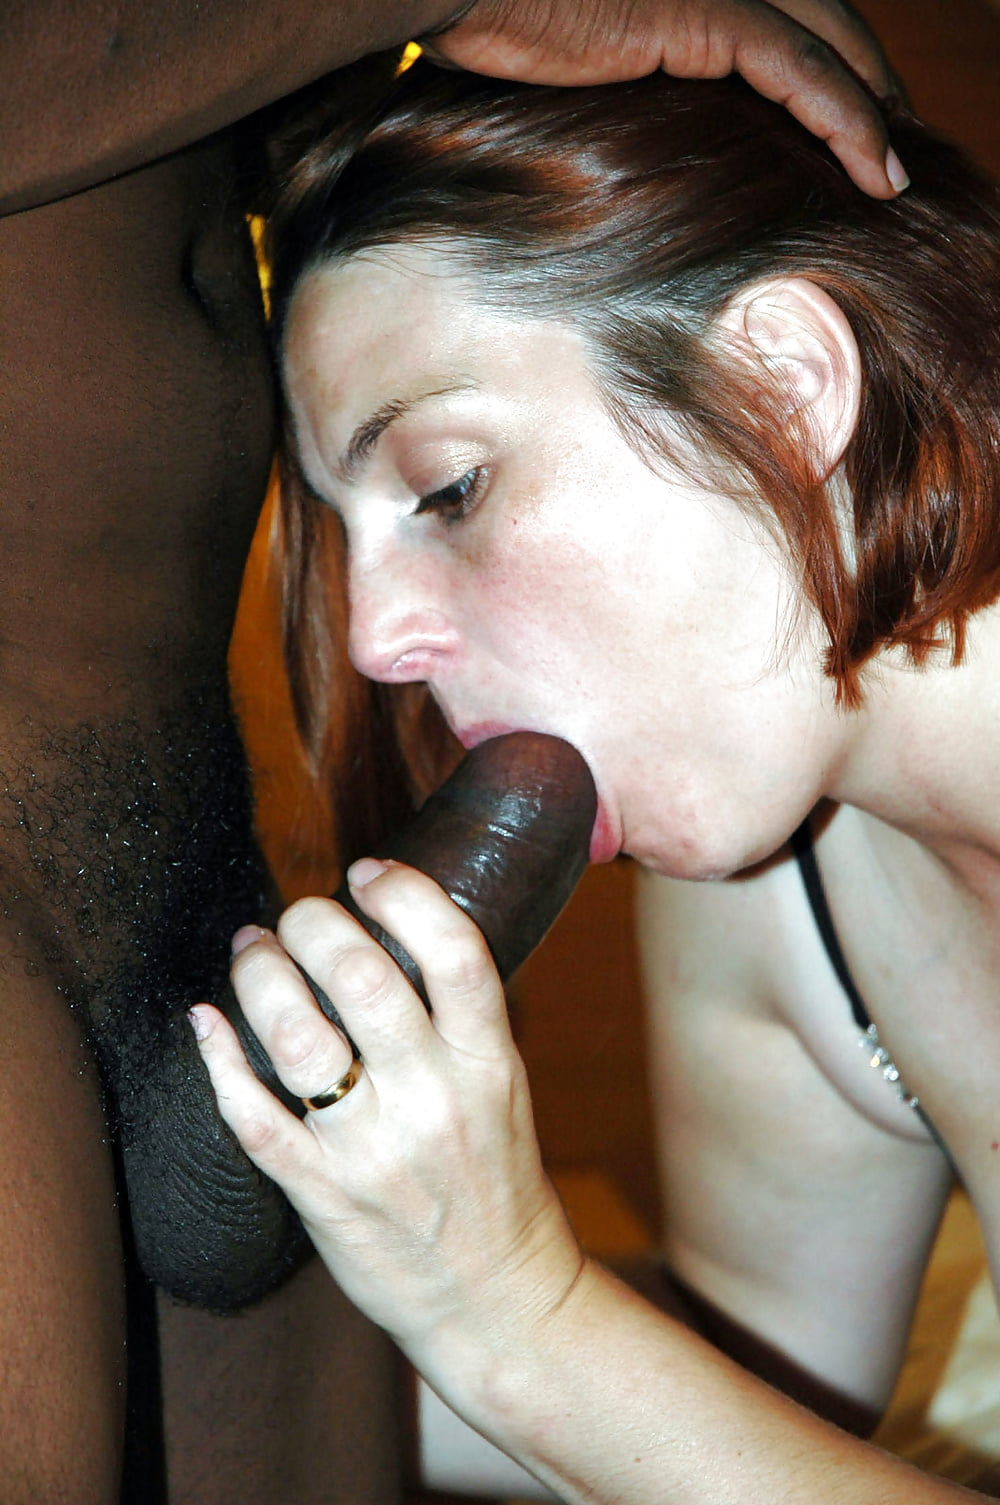 wife-blowjob-ting-alien-sexy-love-slave